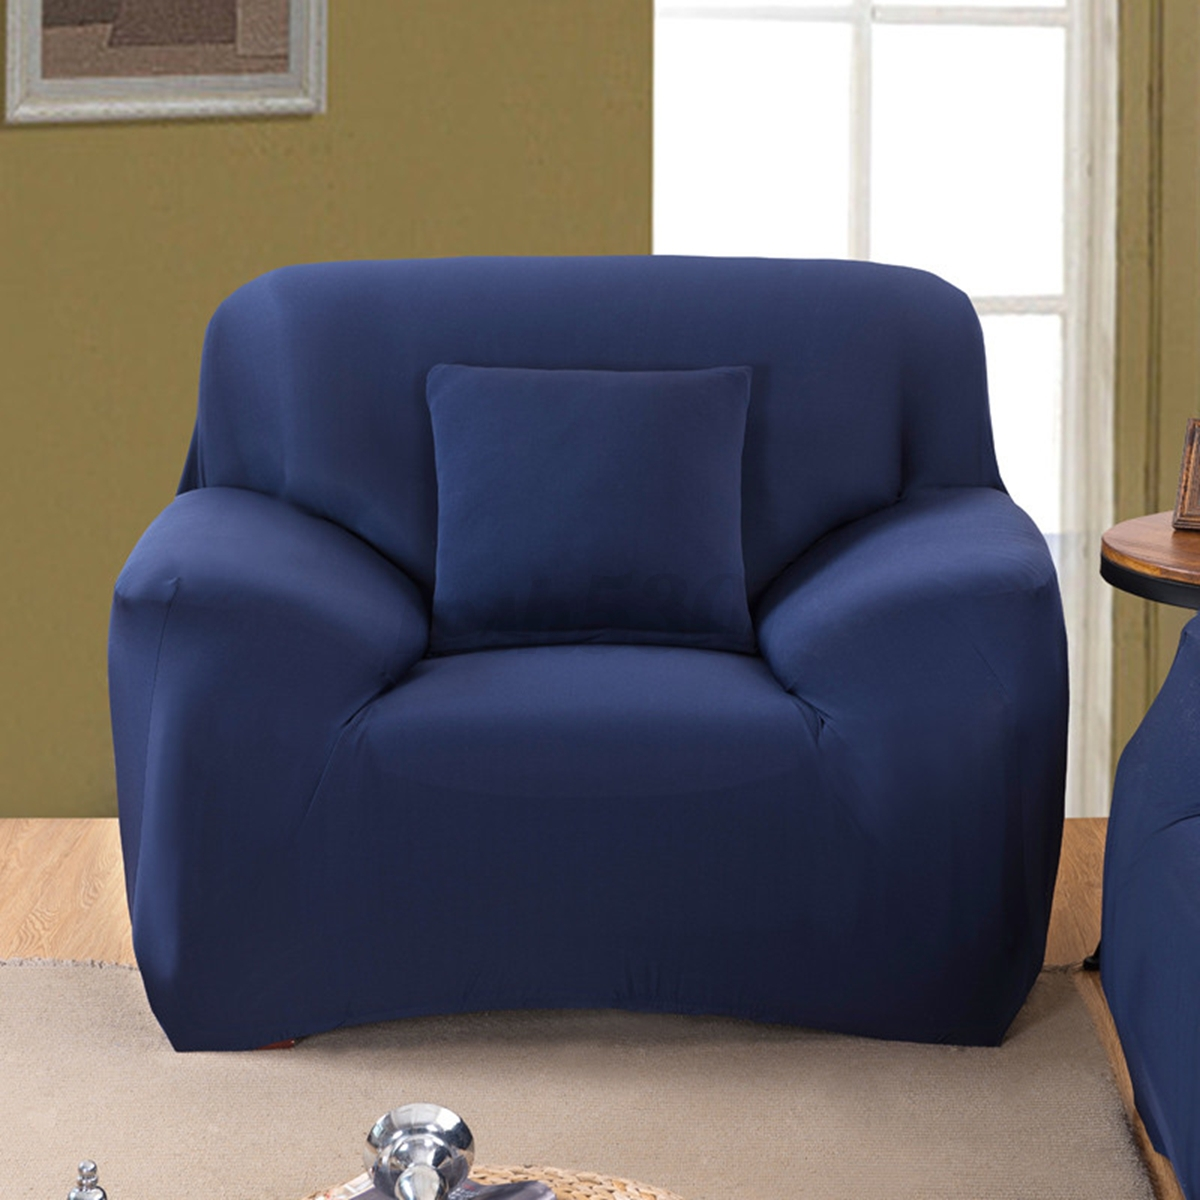 Sectional Sofa Covers With Recliners: NEW NAVY BLUE SLIPCOVER SOFA LOVESEAT CHAIR FURNITURE